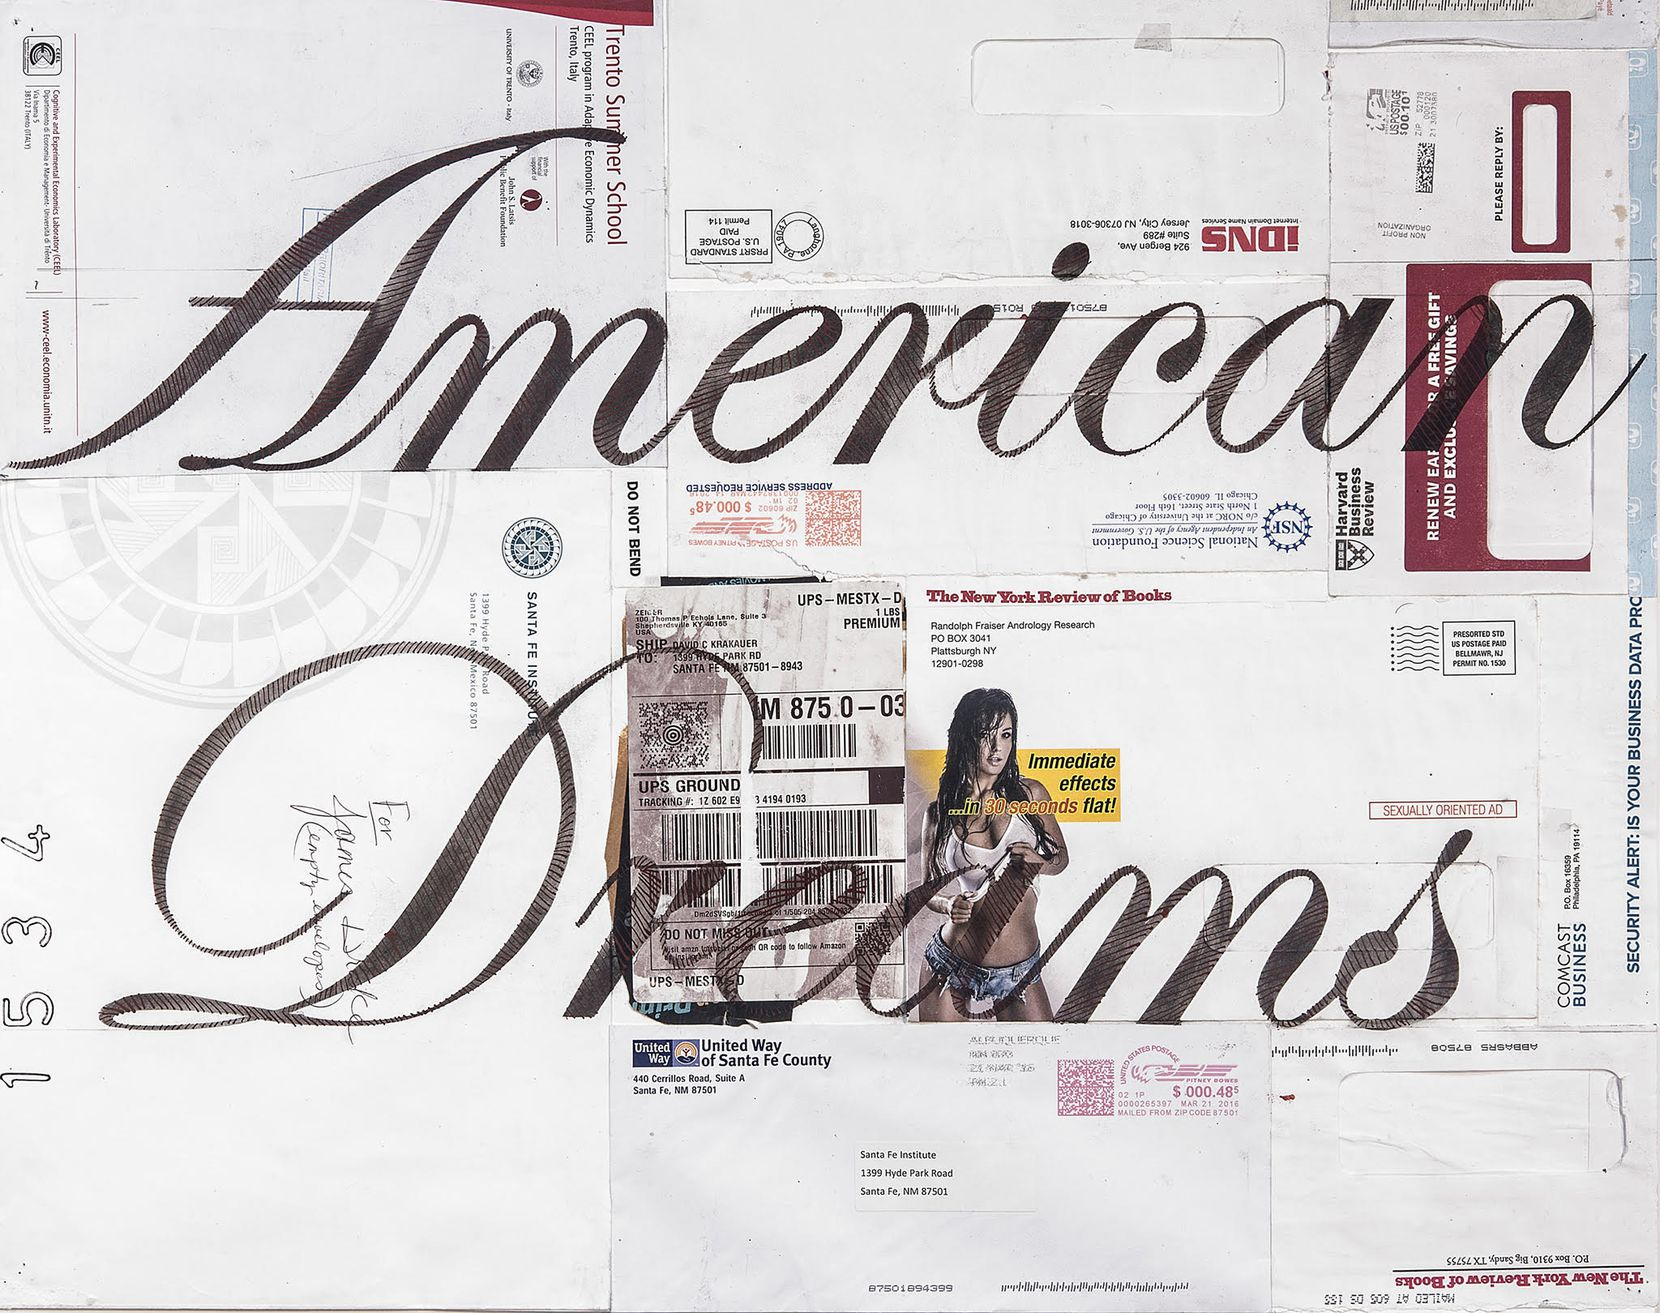 James Drake, 'American Dreams,' 2017. It's one of the works of art being offered through a new online platform called Culture Place.